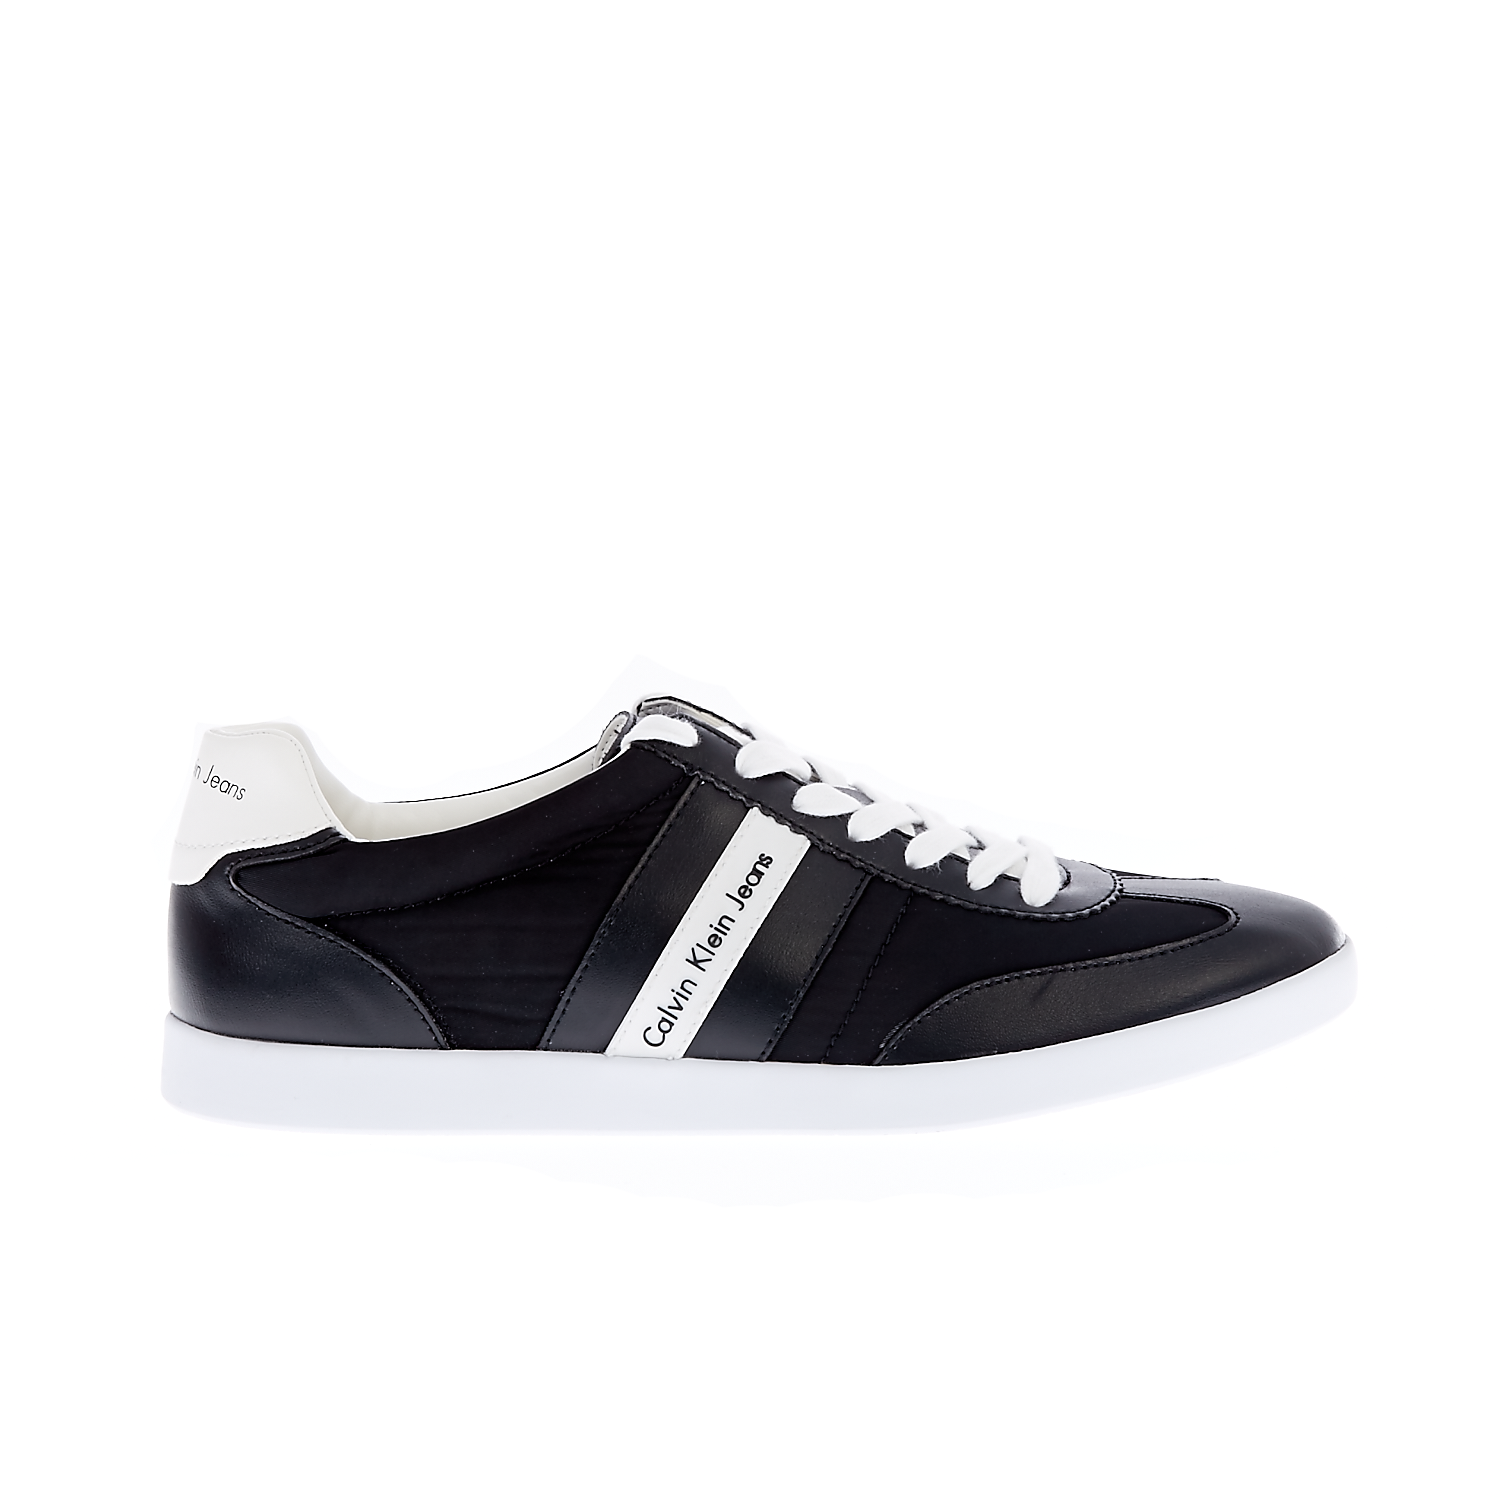 CALVIN KLEIN JEANS – Ανδρικά sneakers CALVIN KLEIN JEANS ACE μαύρα